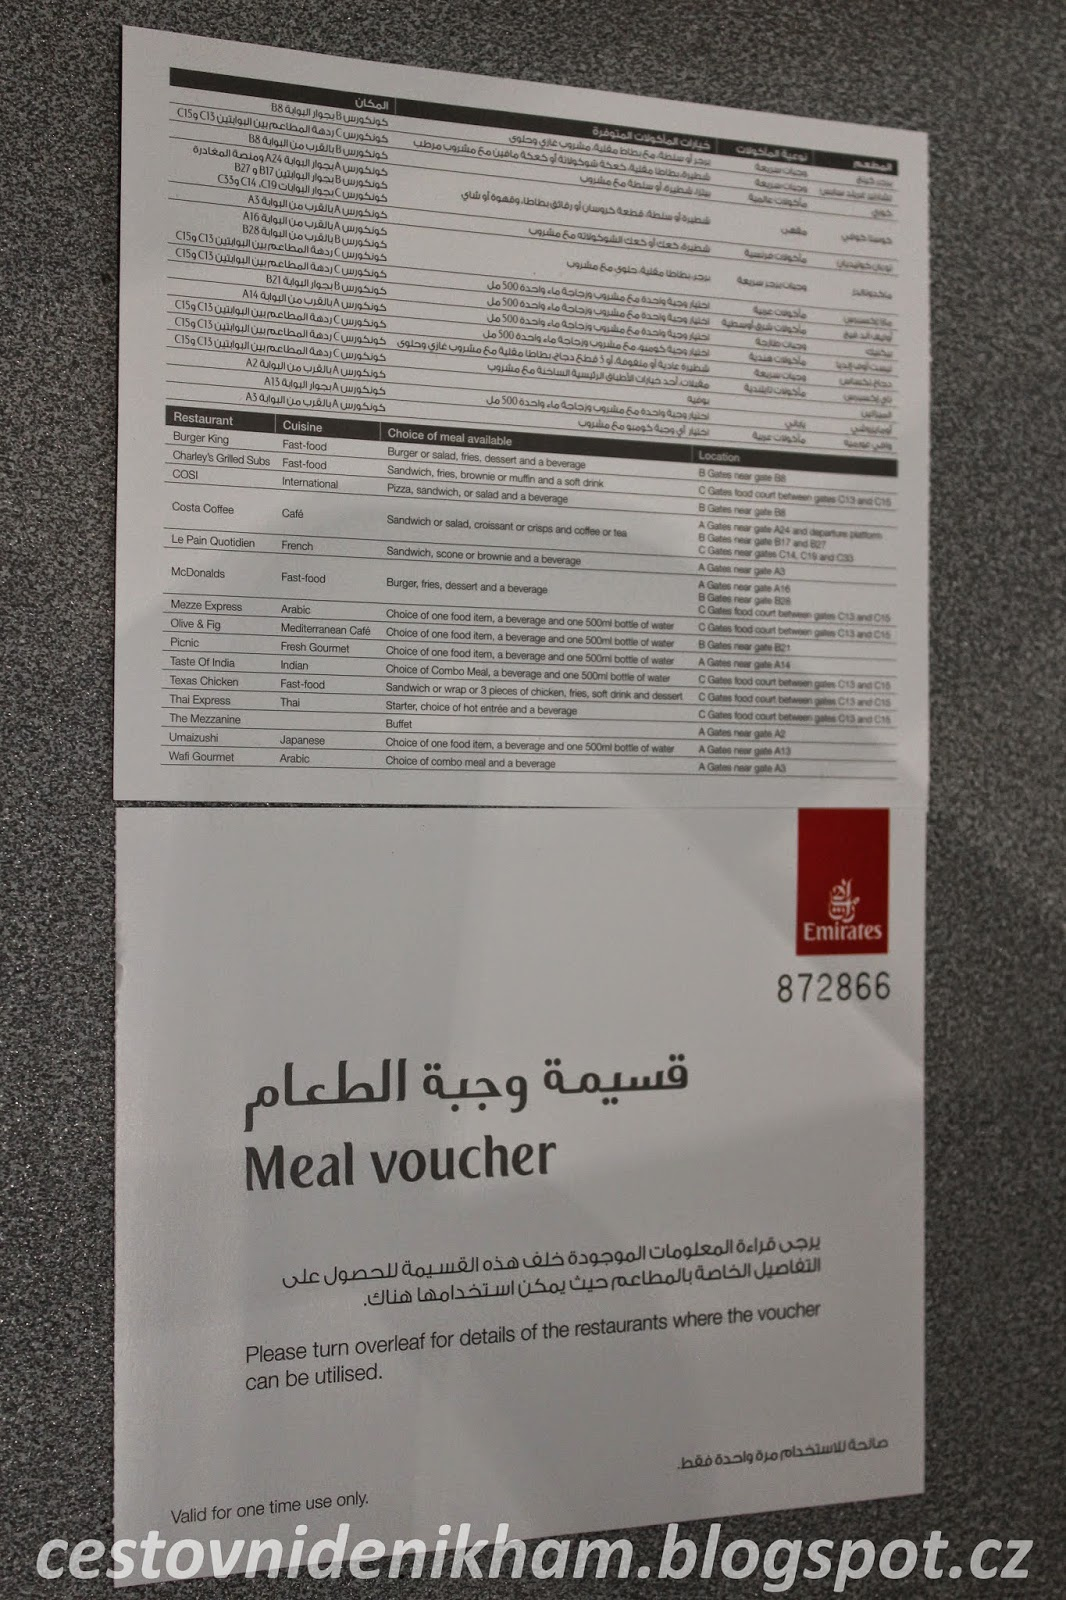 free meal voucher from Emirates